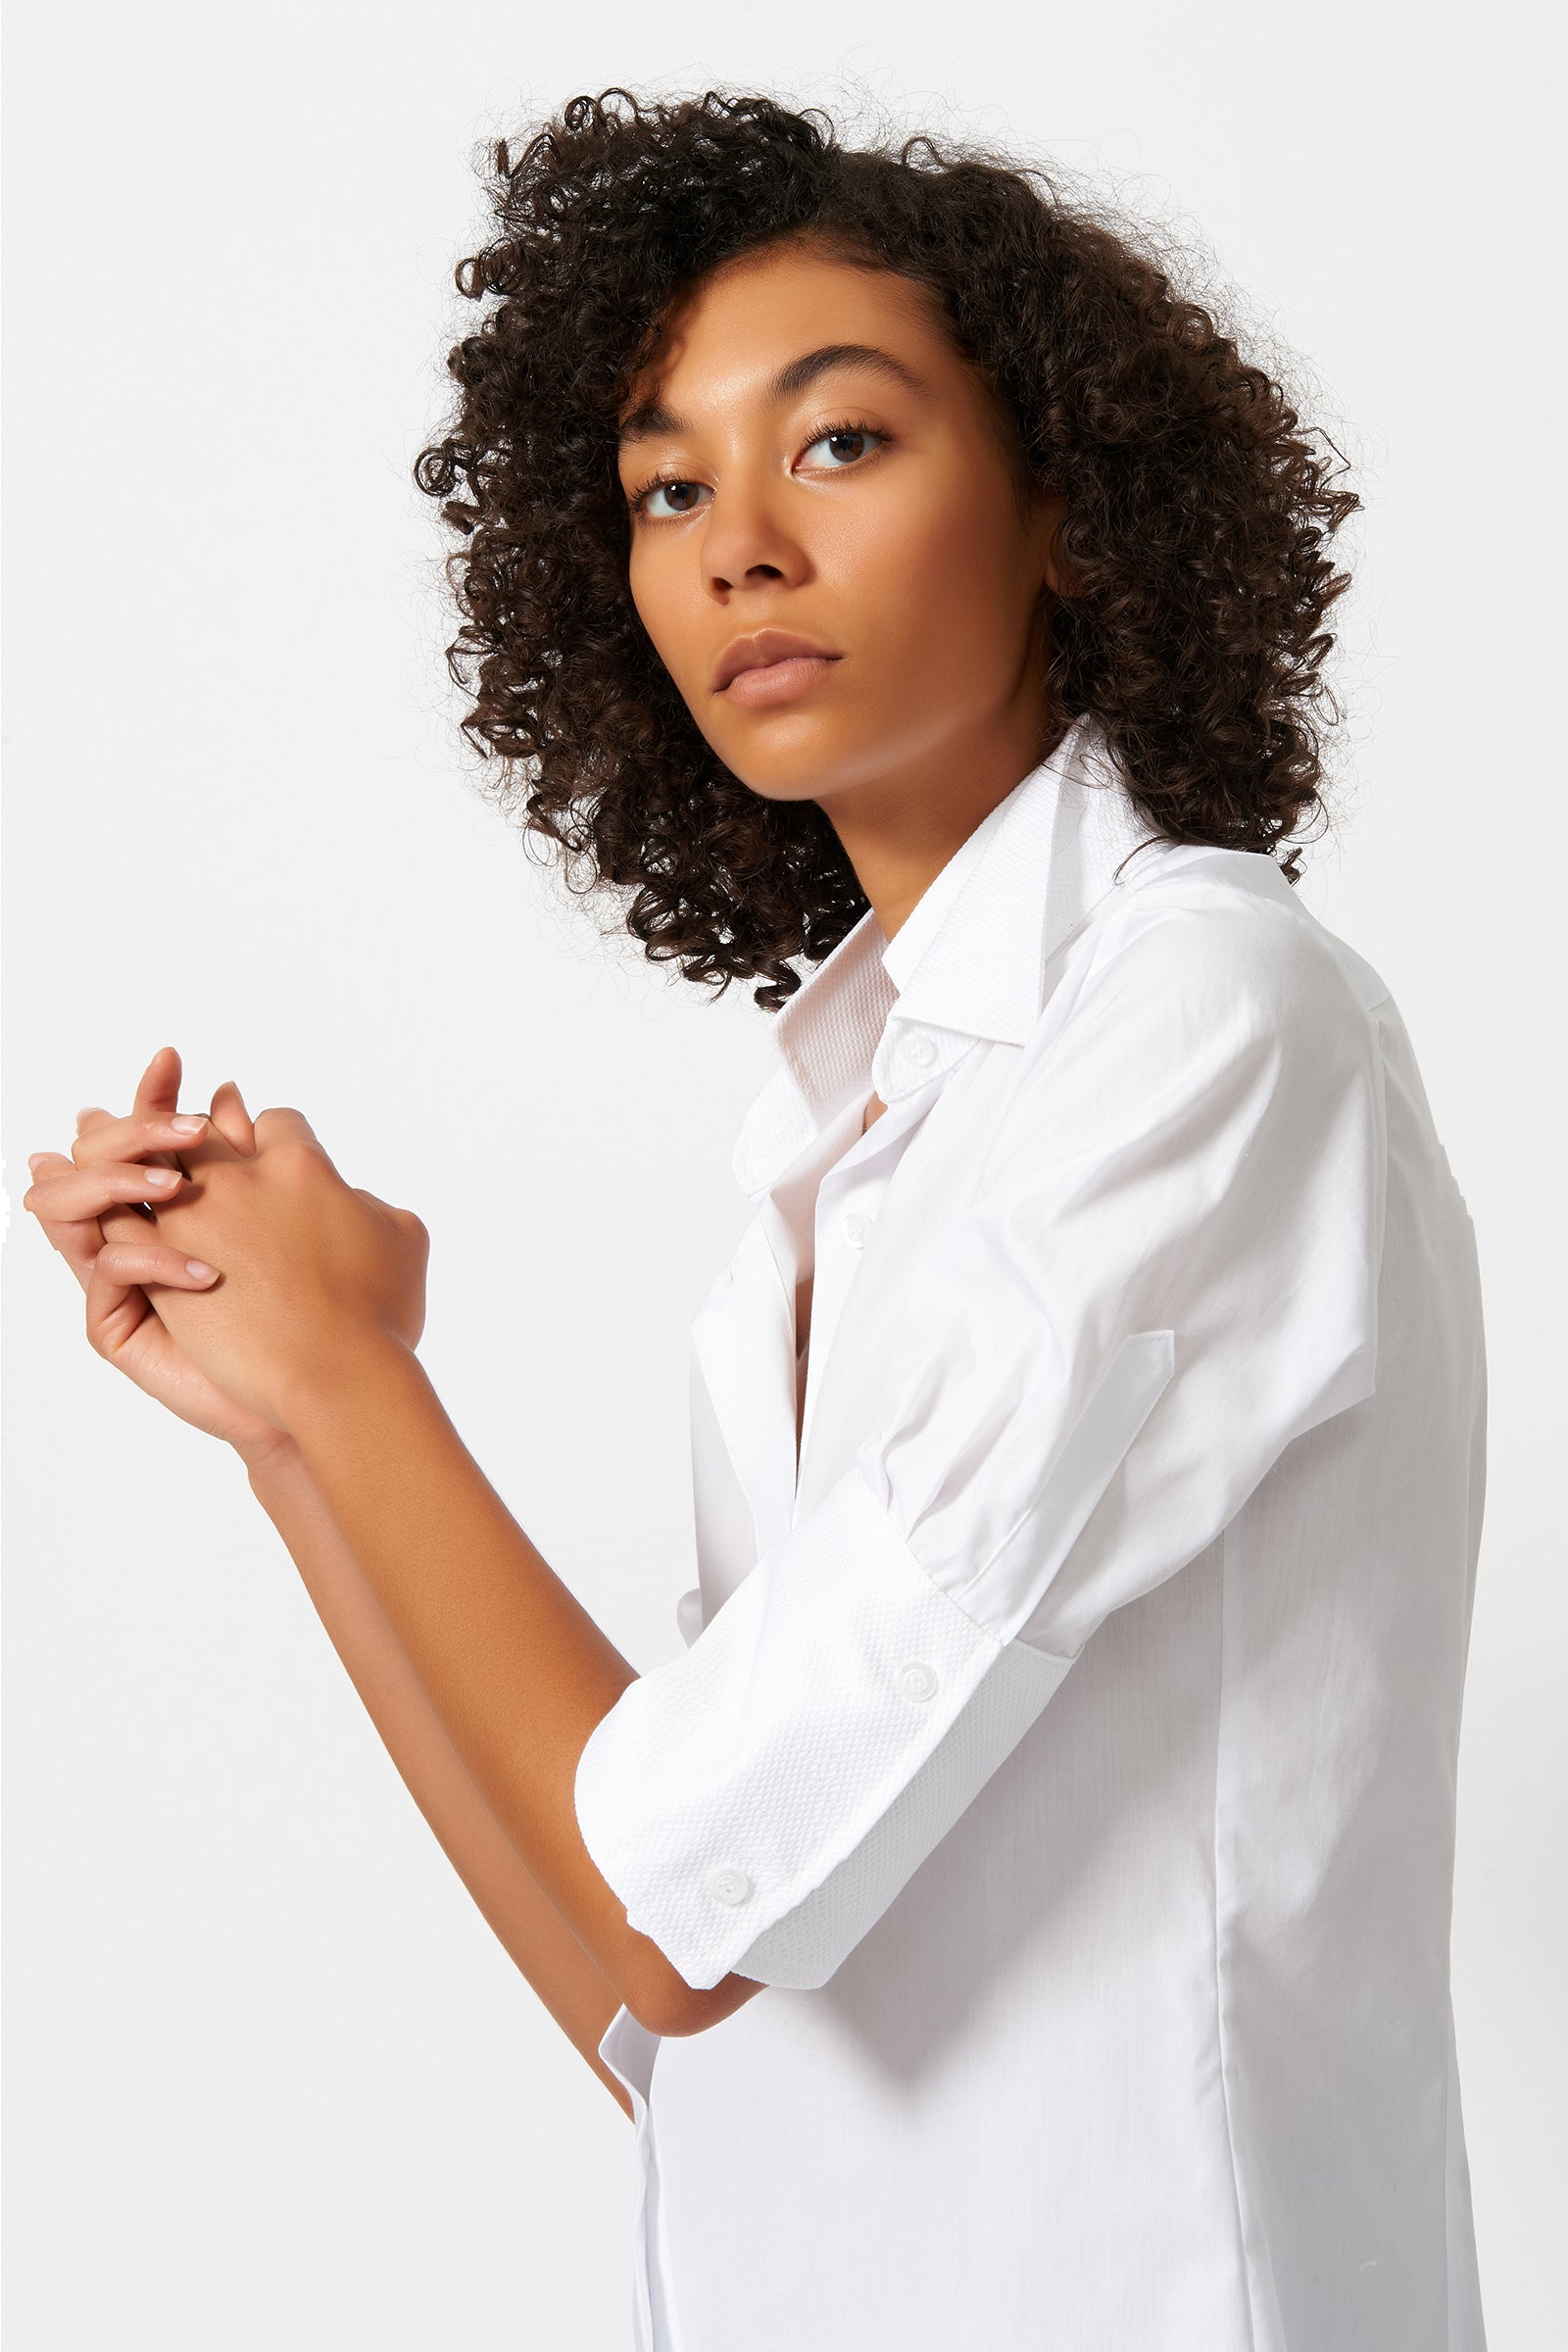 Kal Rieman Double Collar Shirt in White Poplin with Pique on Model Side Detail View